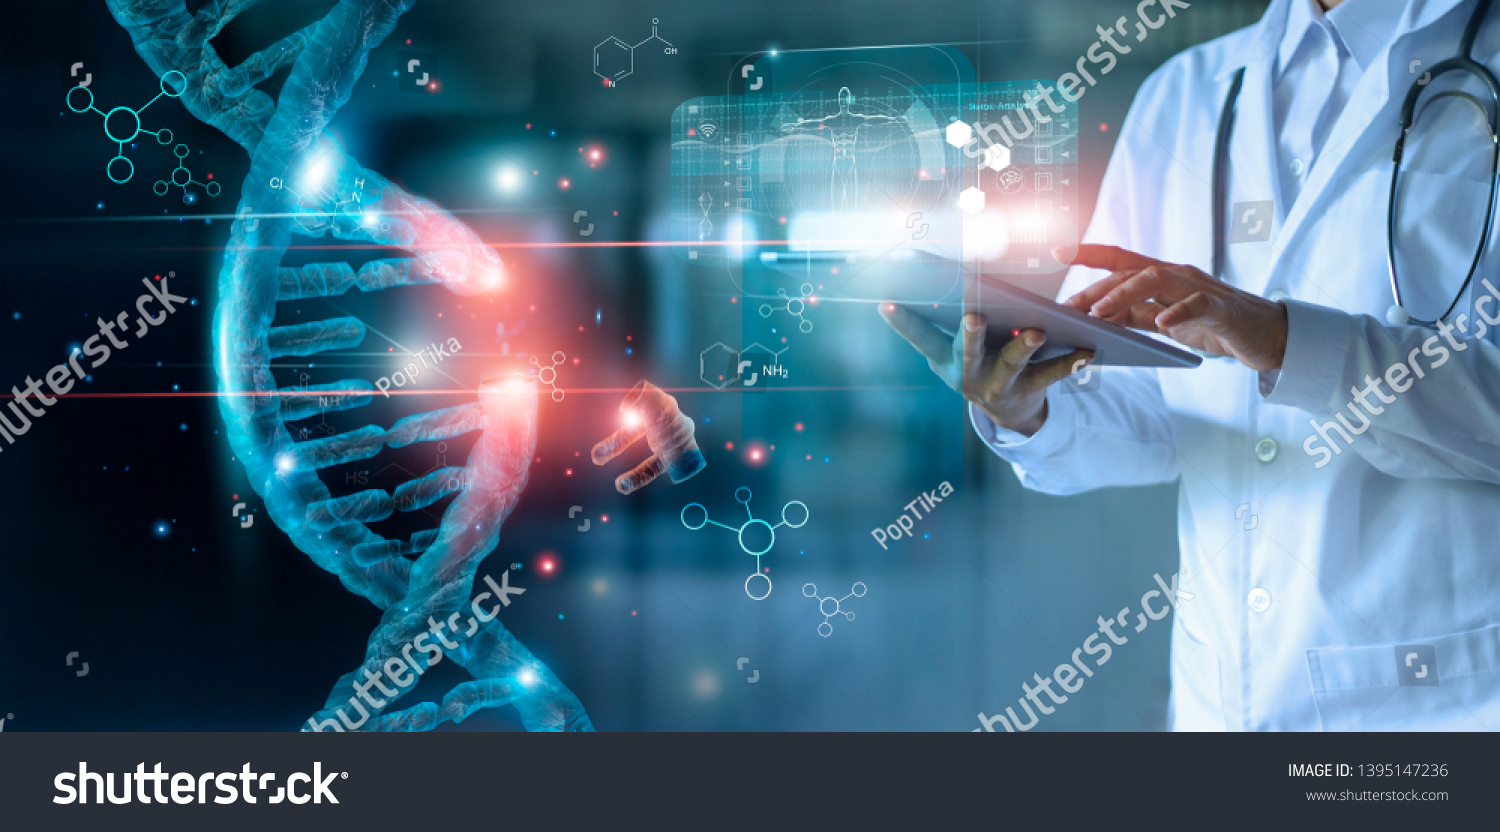 Abstract luminous DNA molecule. Doctor using tablet and check with analysis chromosome DNA genetic of human on virtual interface. Medicine. Medical science and biotechnology. #1395147236